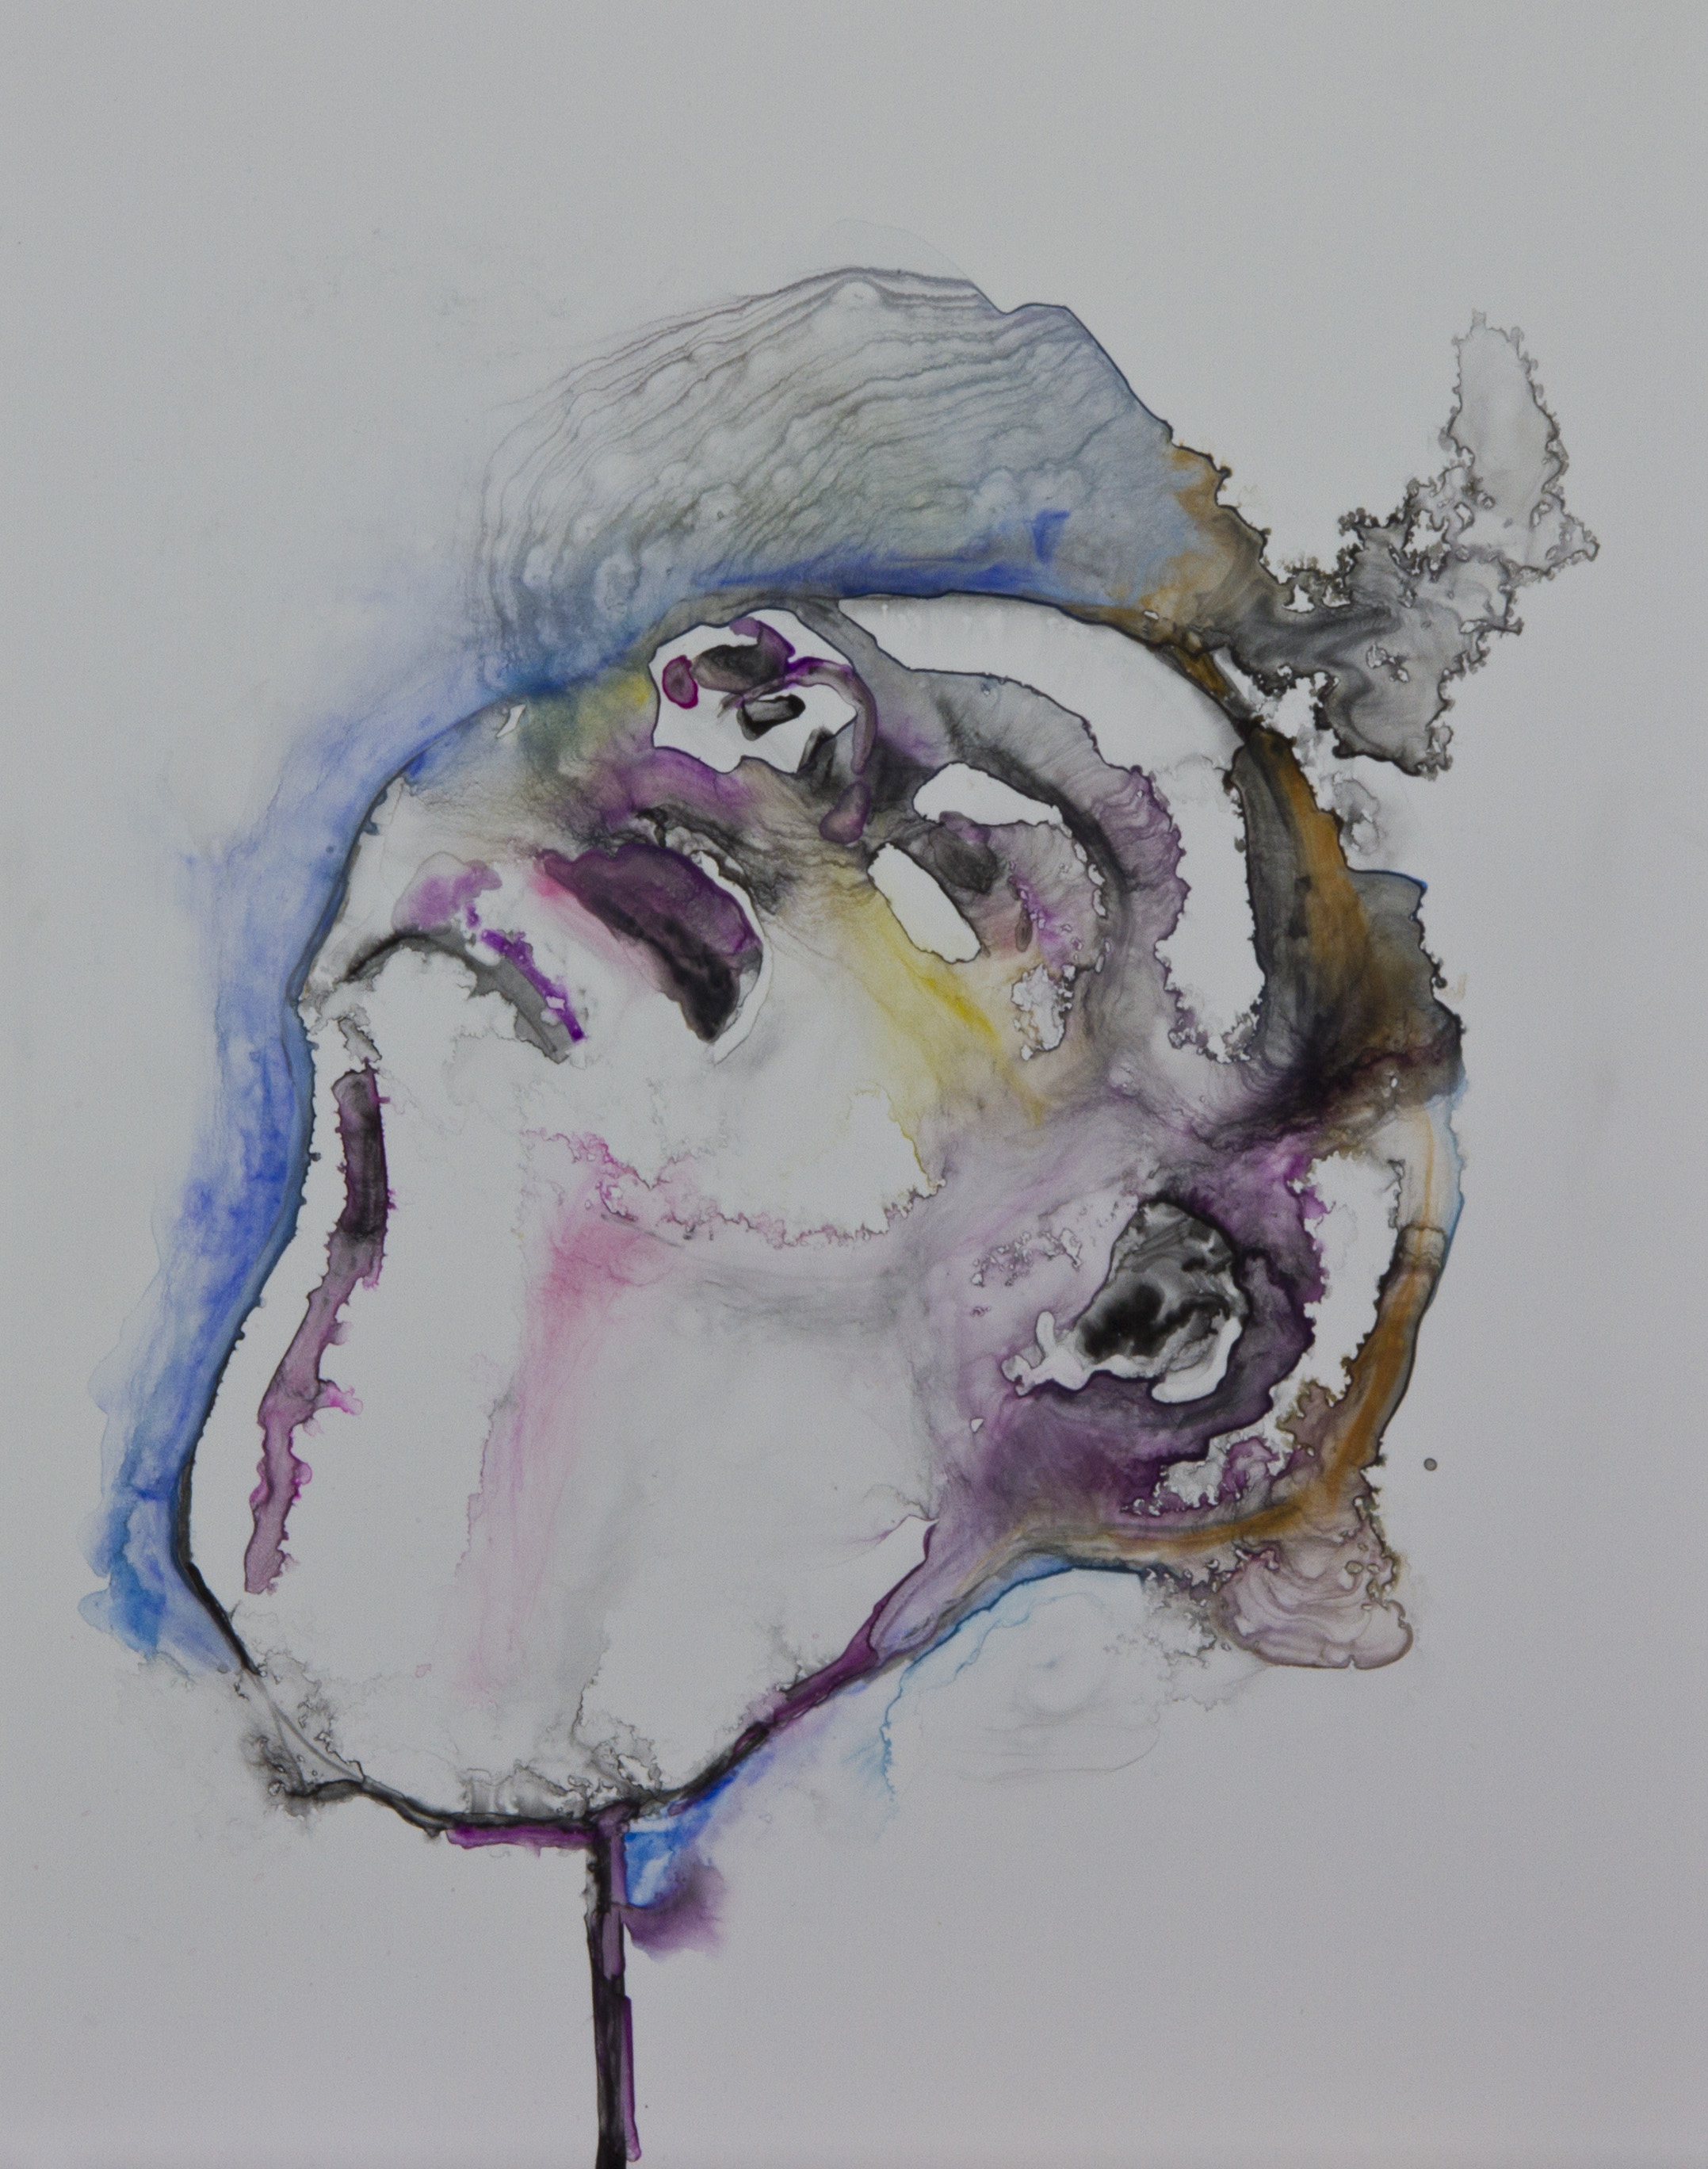 Specimen 2, 2011, watercolor on polypropylene, 11x14 inches